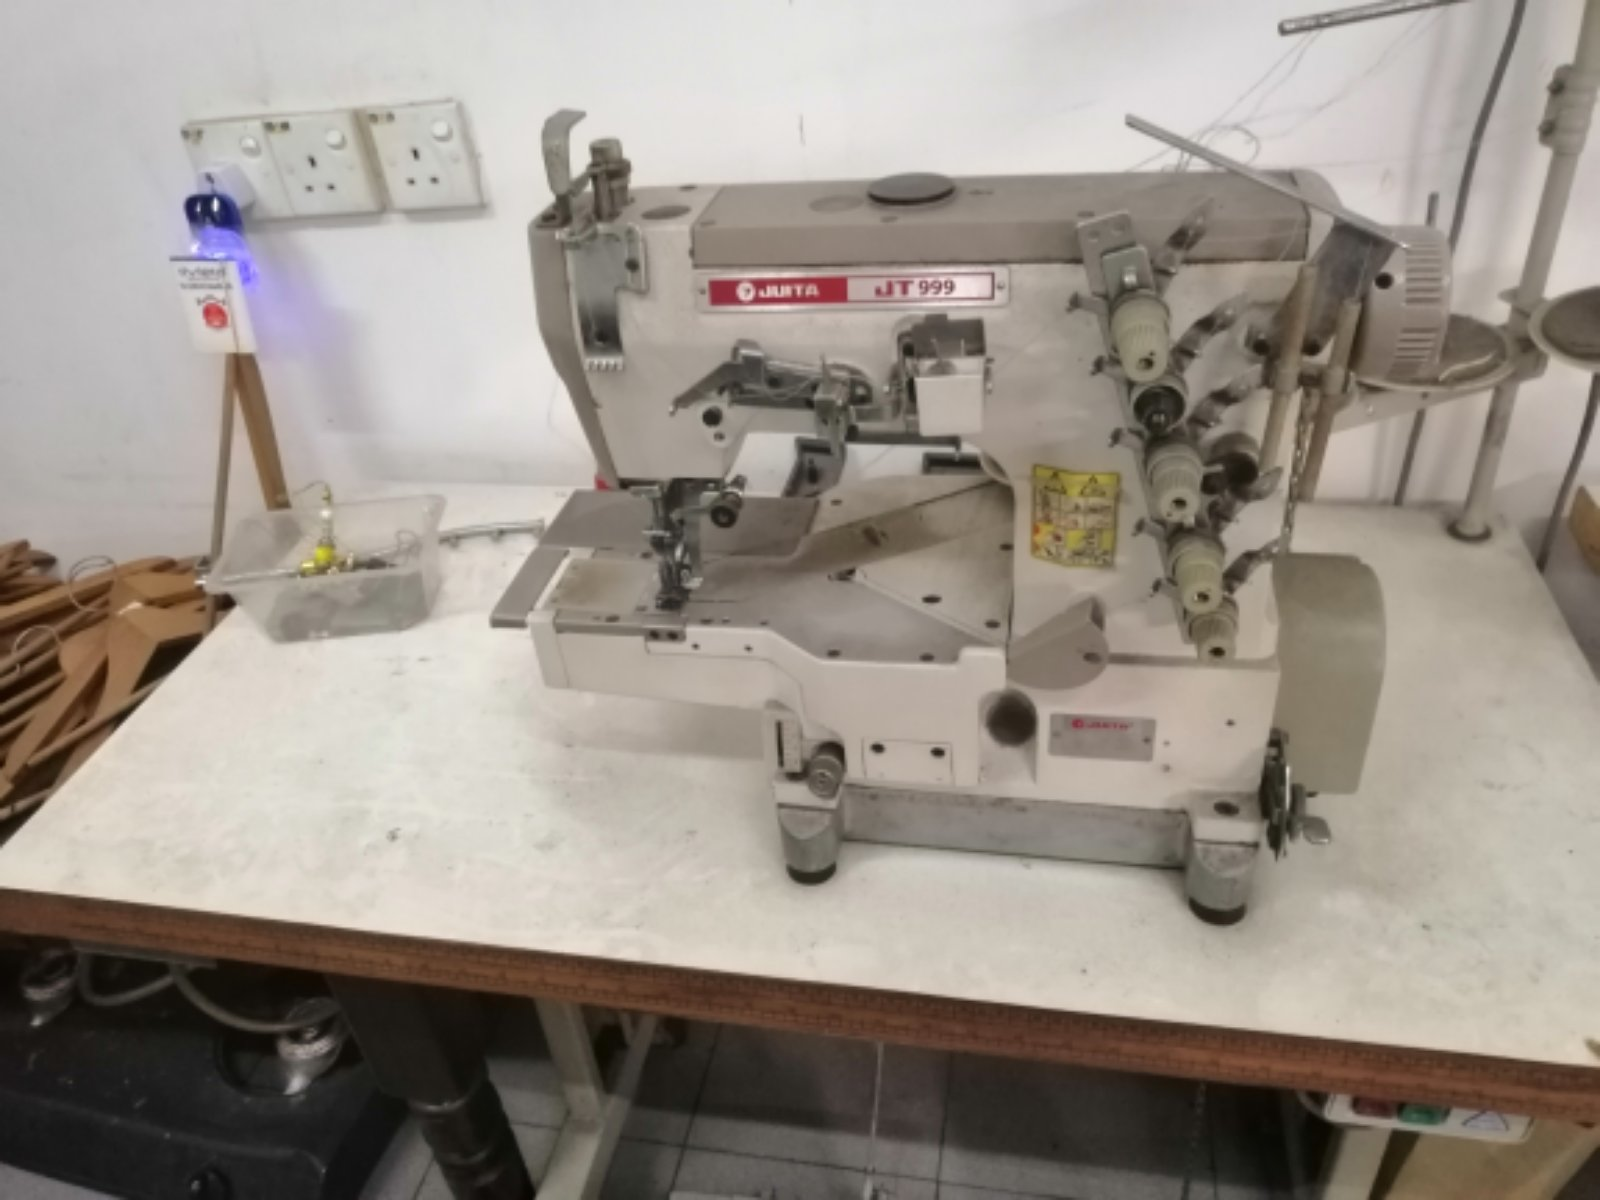 2nd Juita Interlock Coverstitch machine